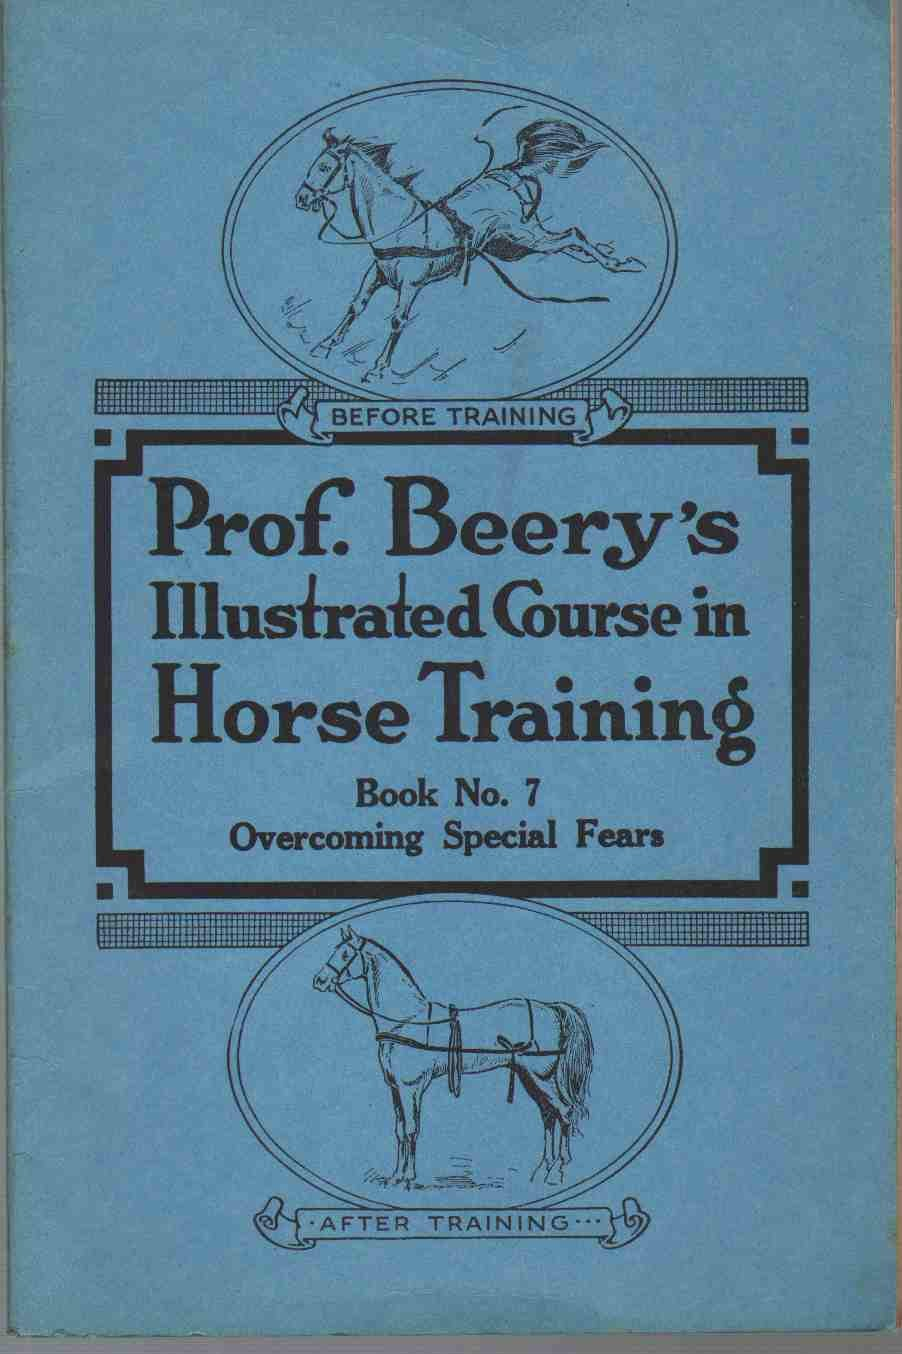 PROF. BEERY'S ILLUSTRATED COURSE IN HORSE TRAINING - Book No. 7 - Overcoming Special Fears